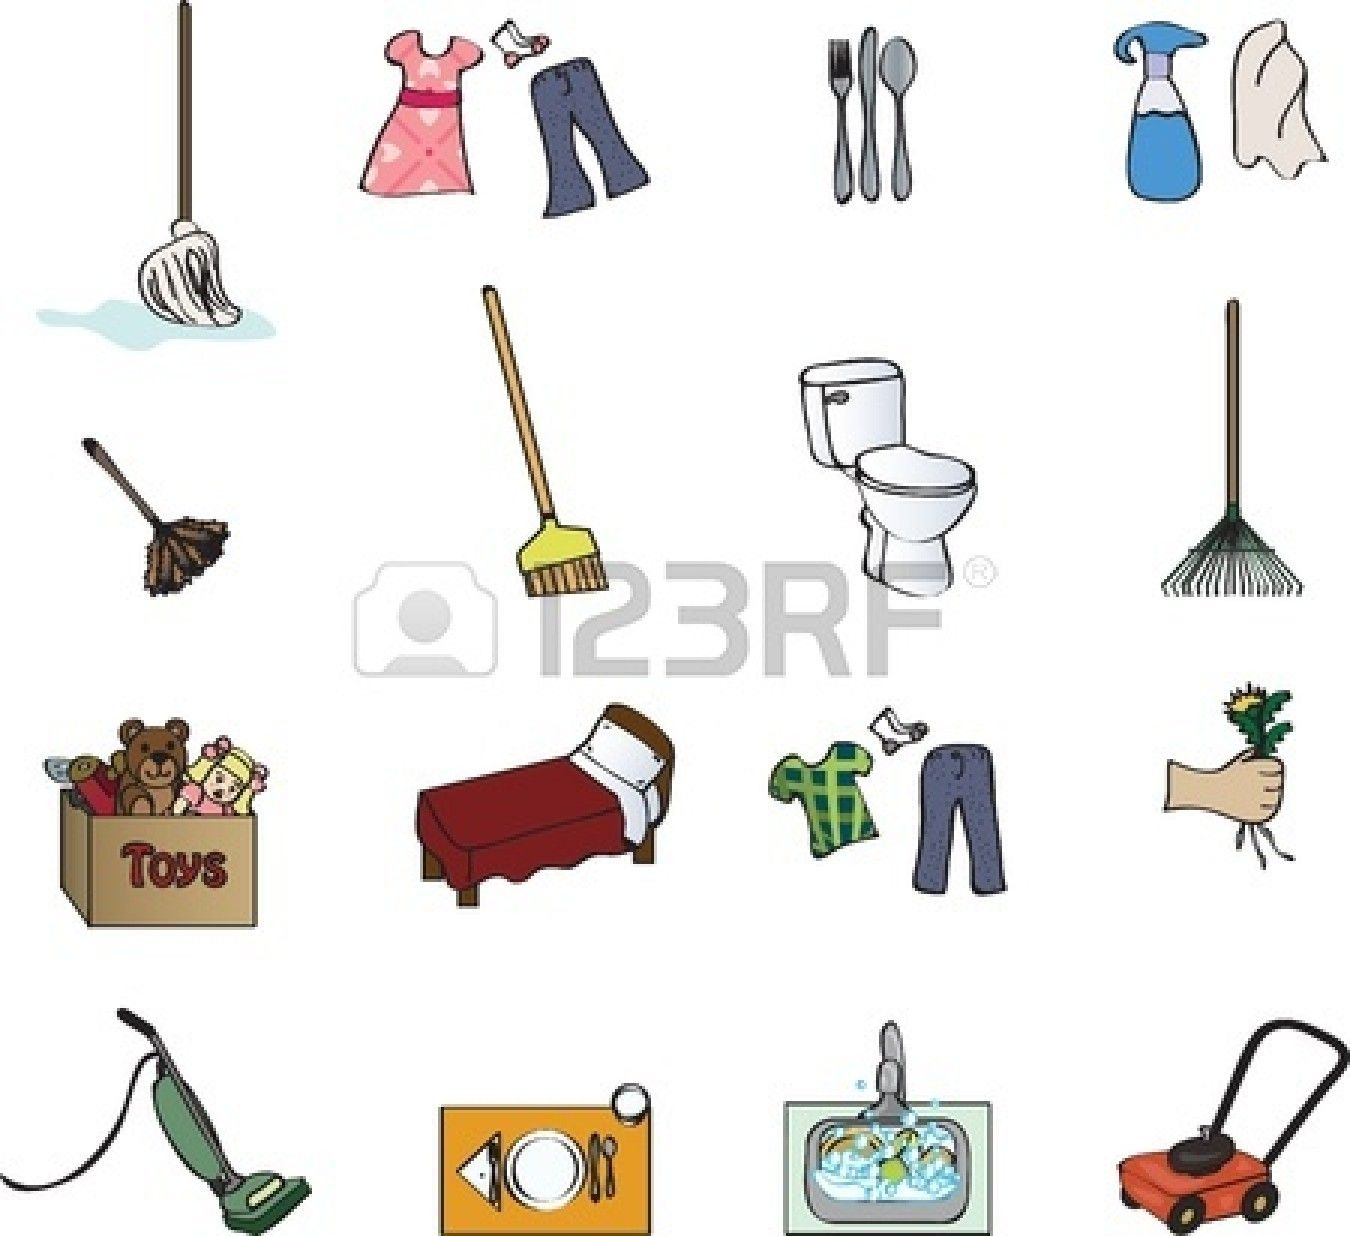 hight resolution of icons for a chore chart stock vector